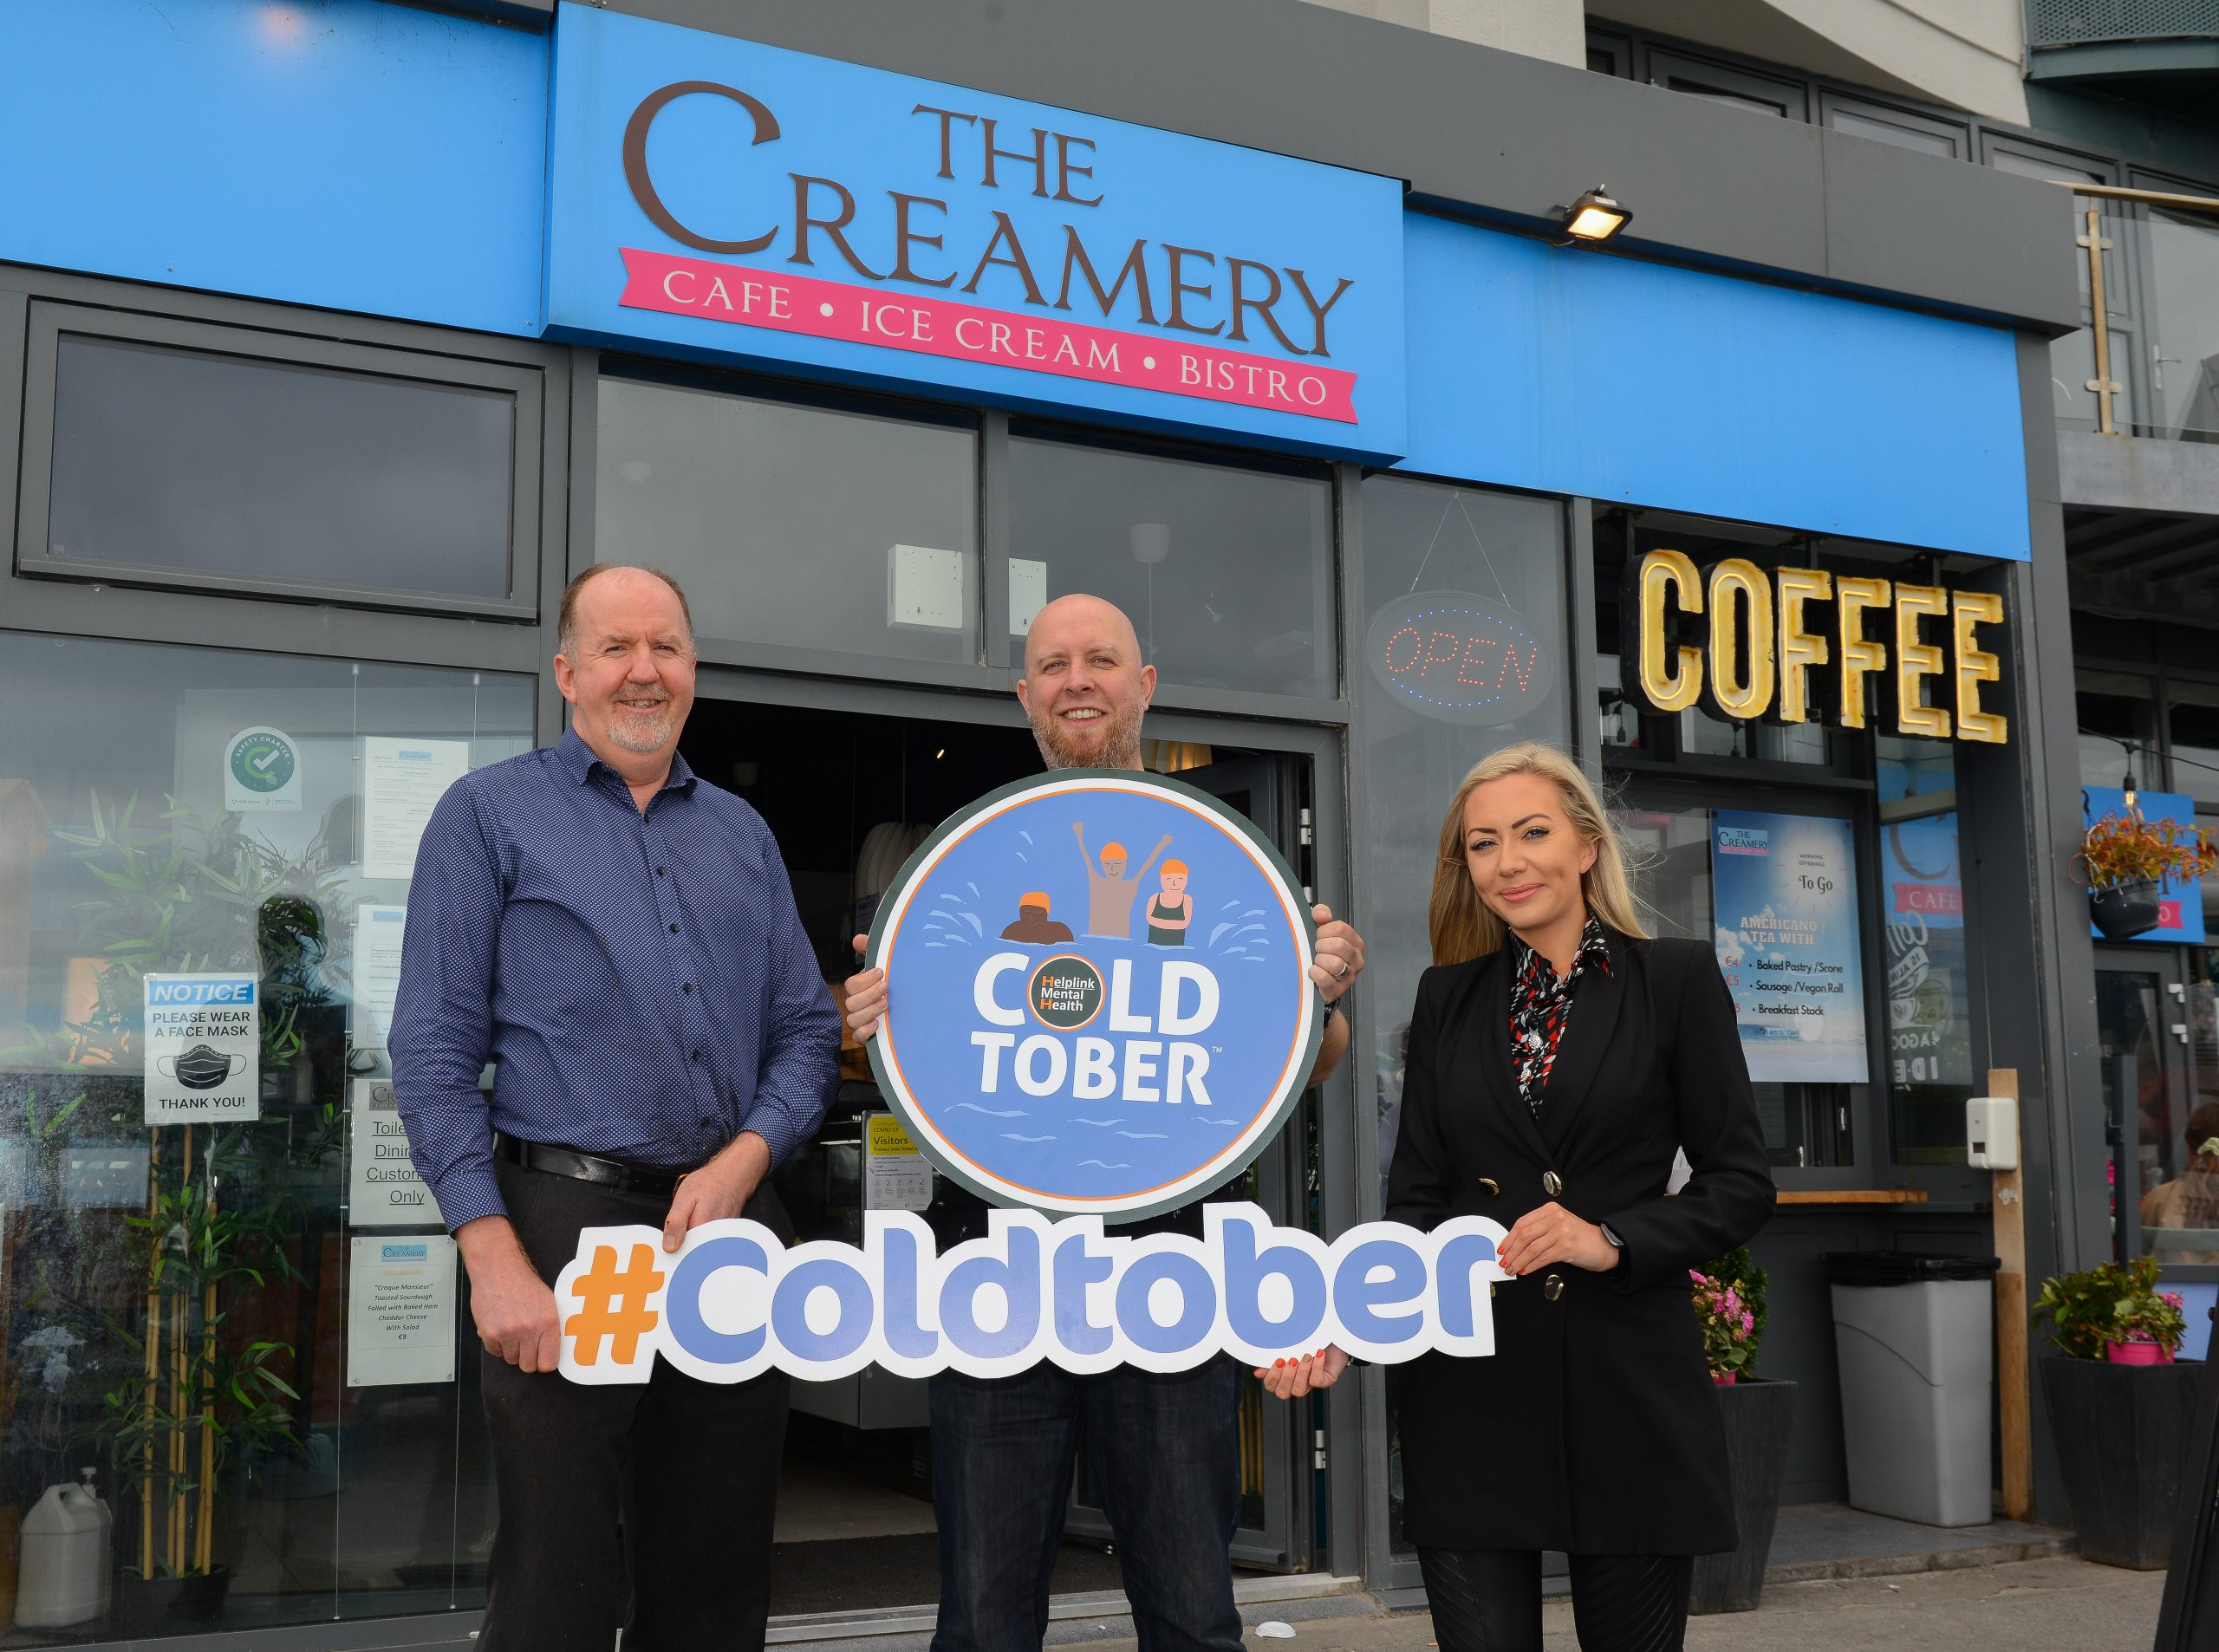 The Creamery Cafe Galway